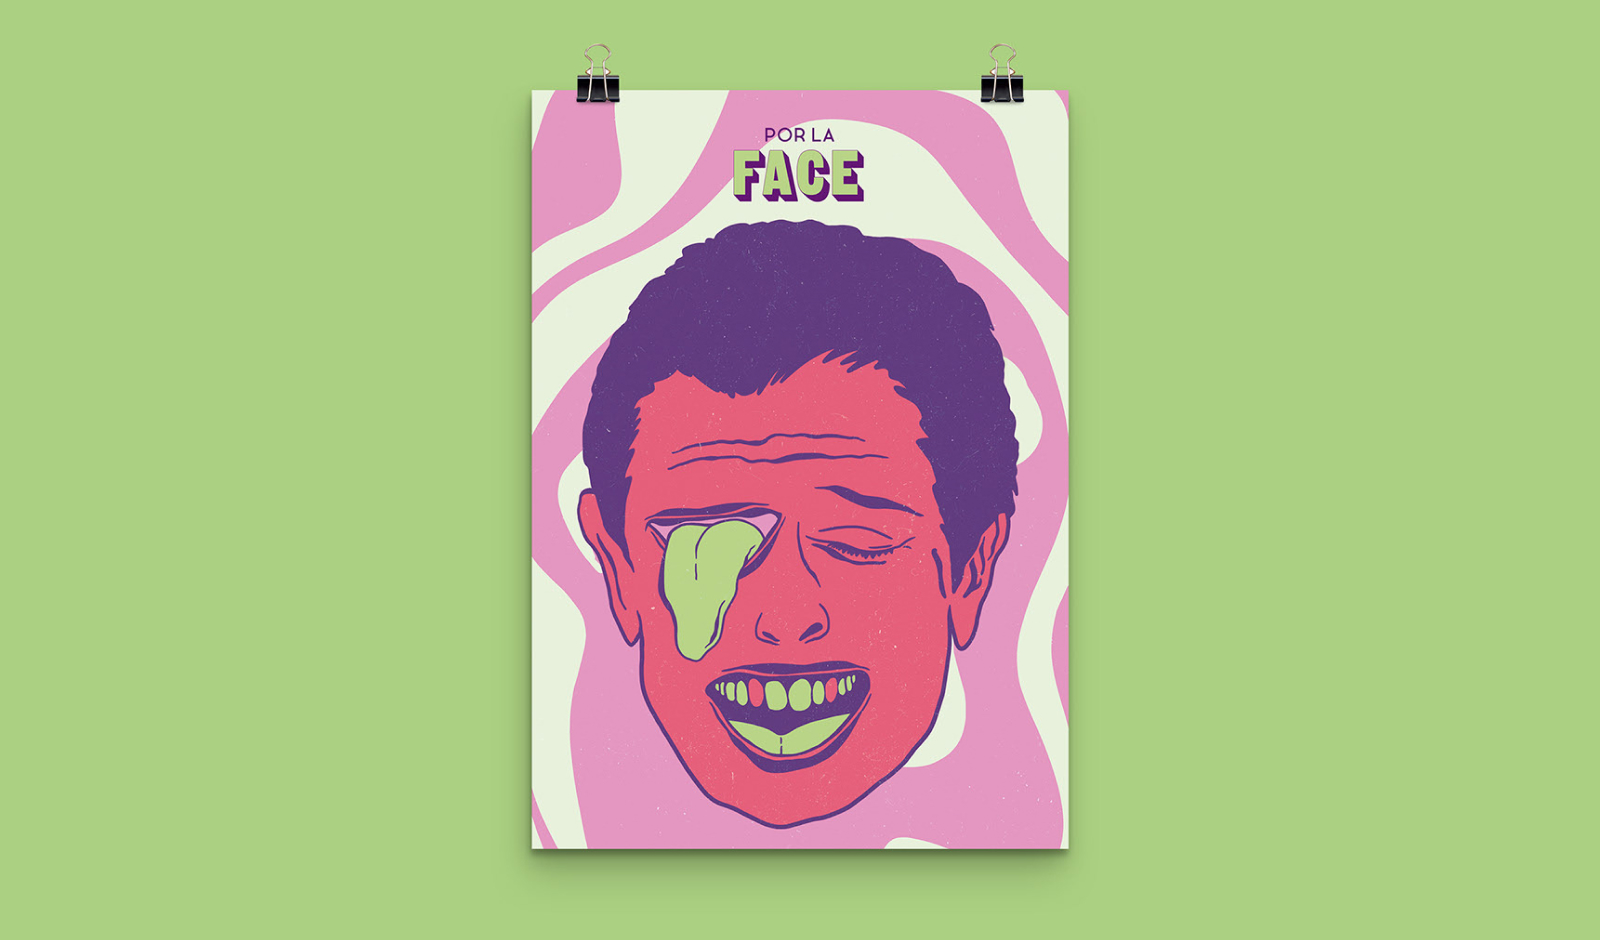 Por La Face - Editorial Design